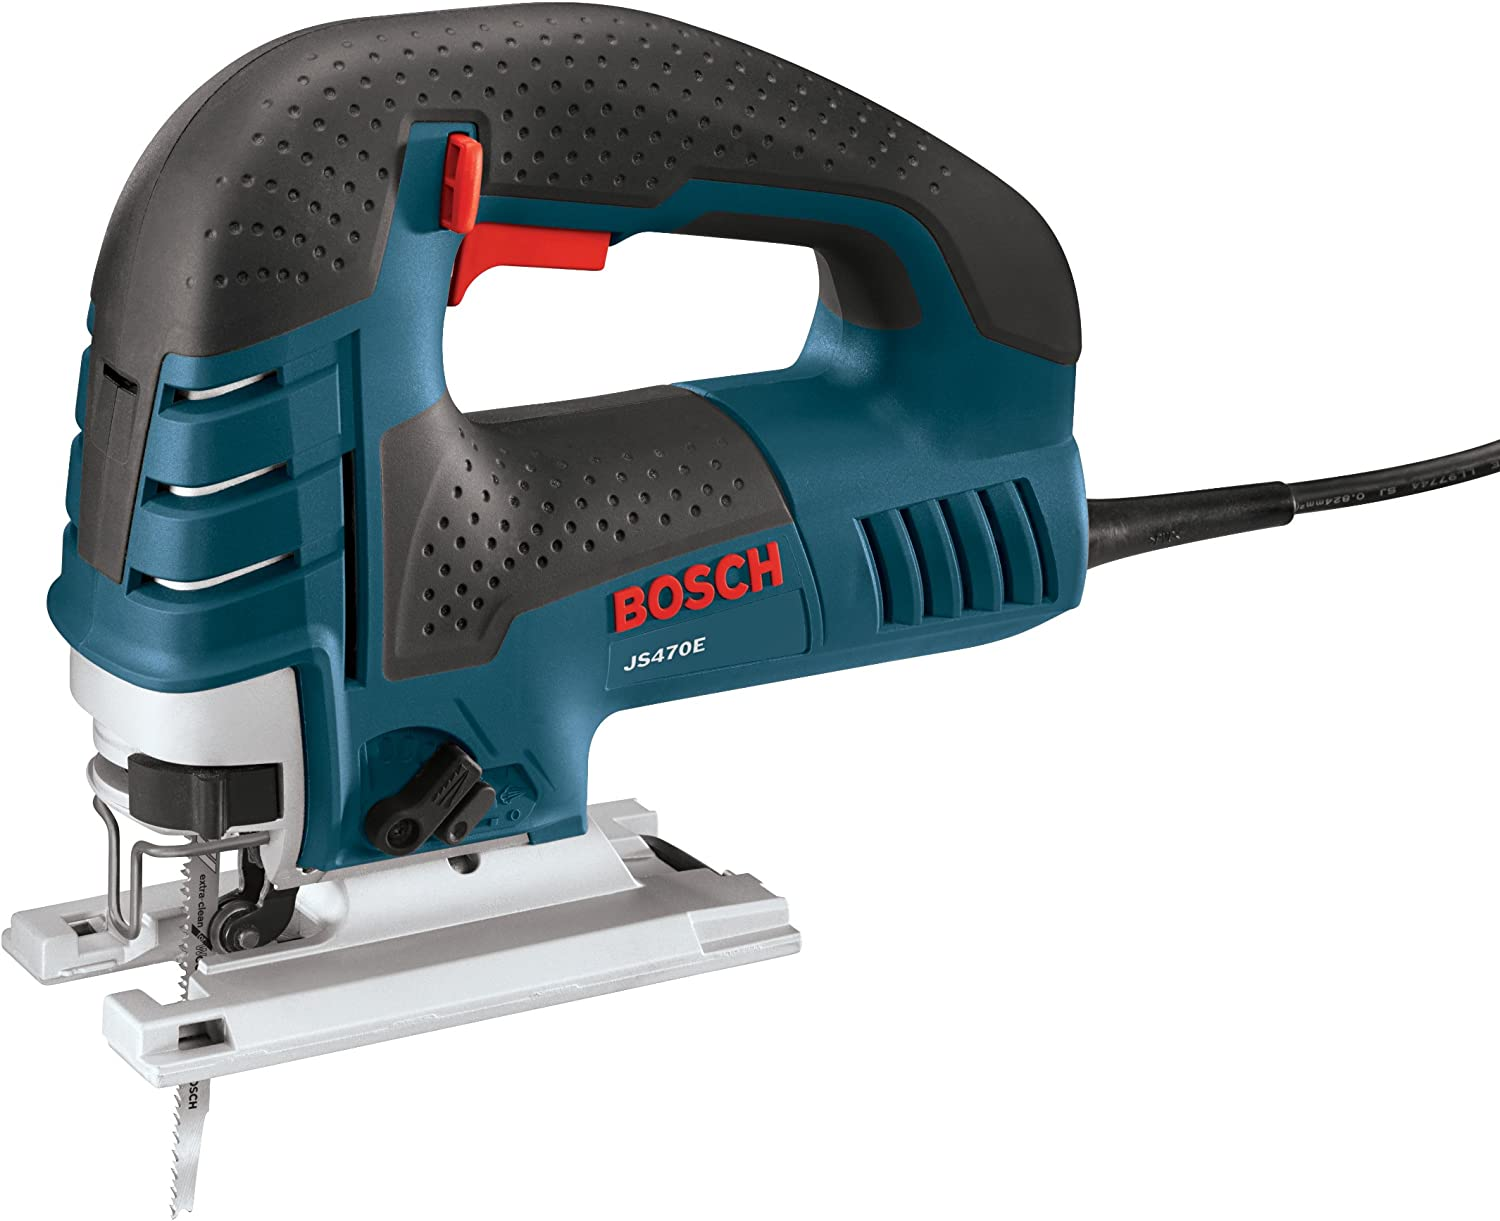 6. Bosch JS470E 7-Amp Variable Speed Jigsaw